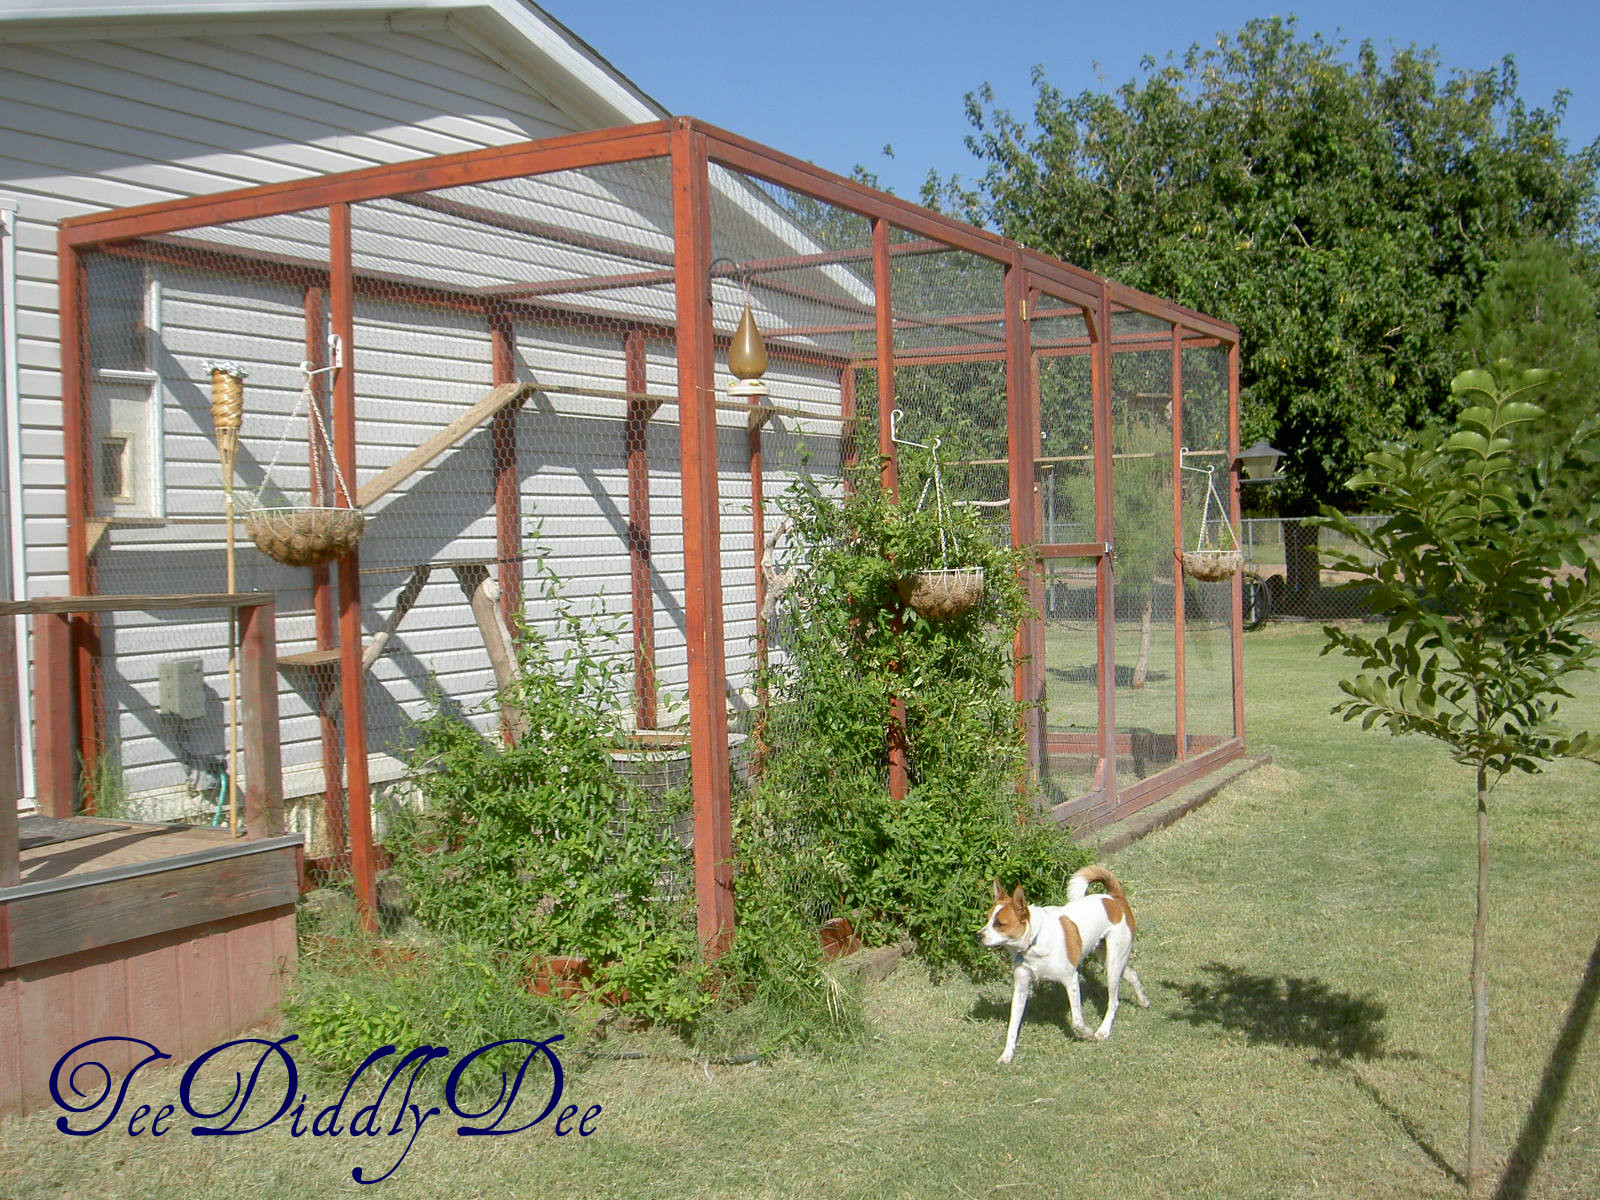 Outdoor Cat Enclosure DIY  How To build an outdoor cat enclosure or catio